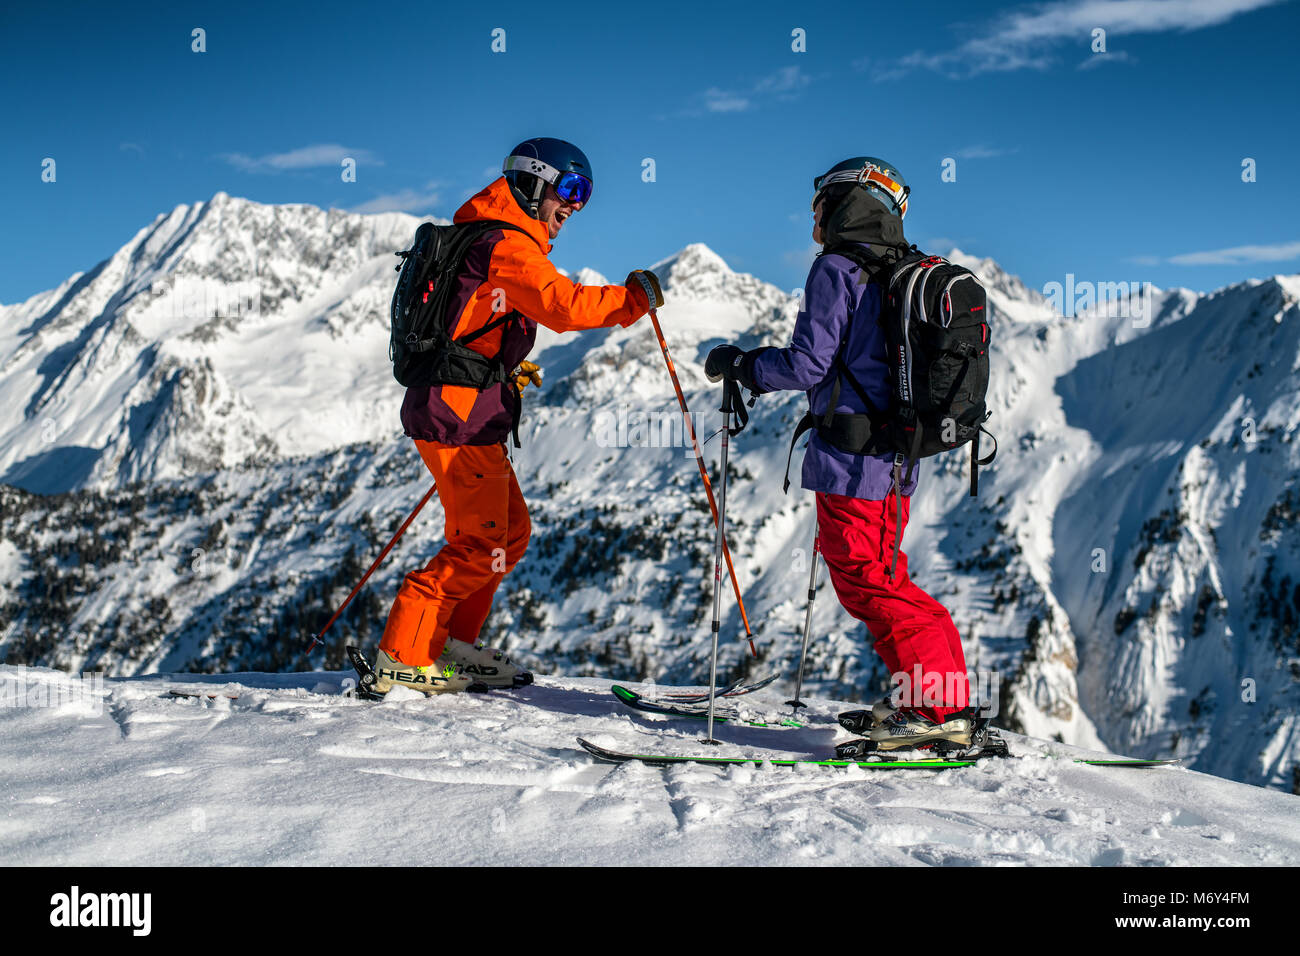 A male ski instructor teaches a woman in the French Alpine resort of Courchevel. - Stock Image